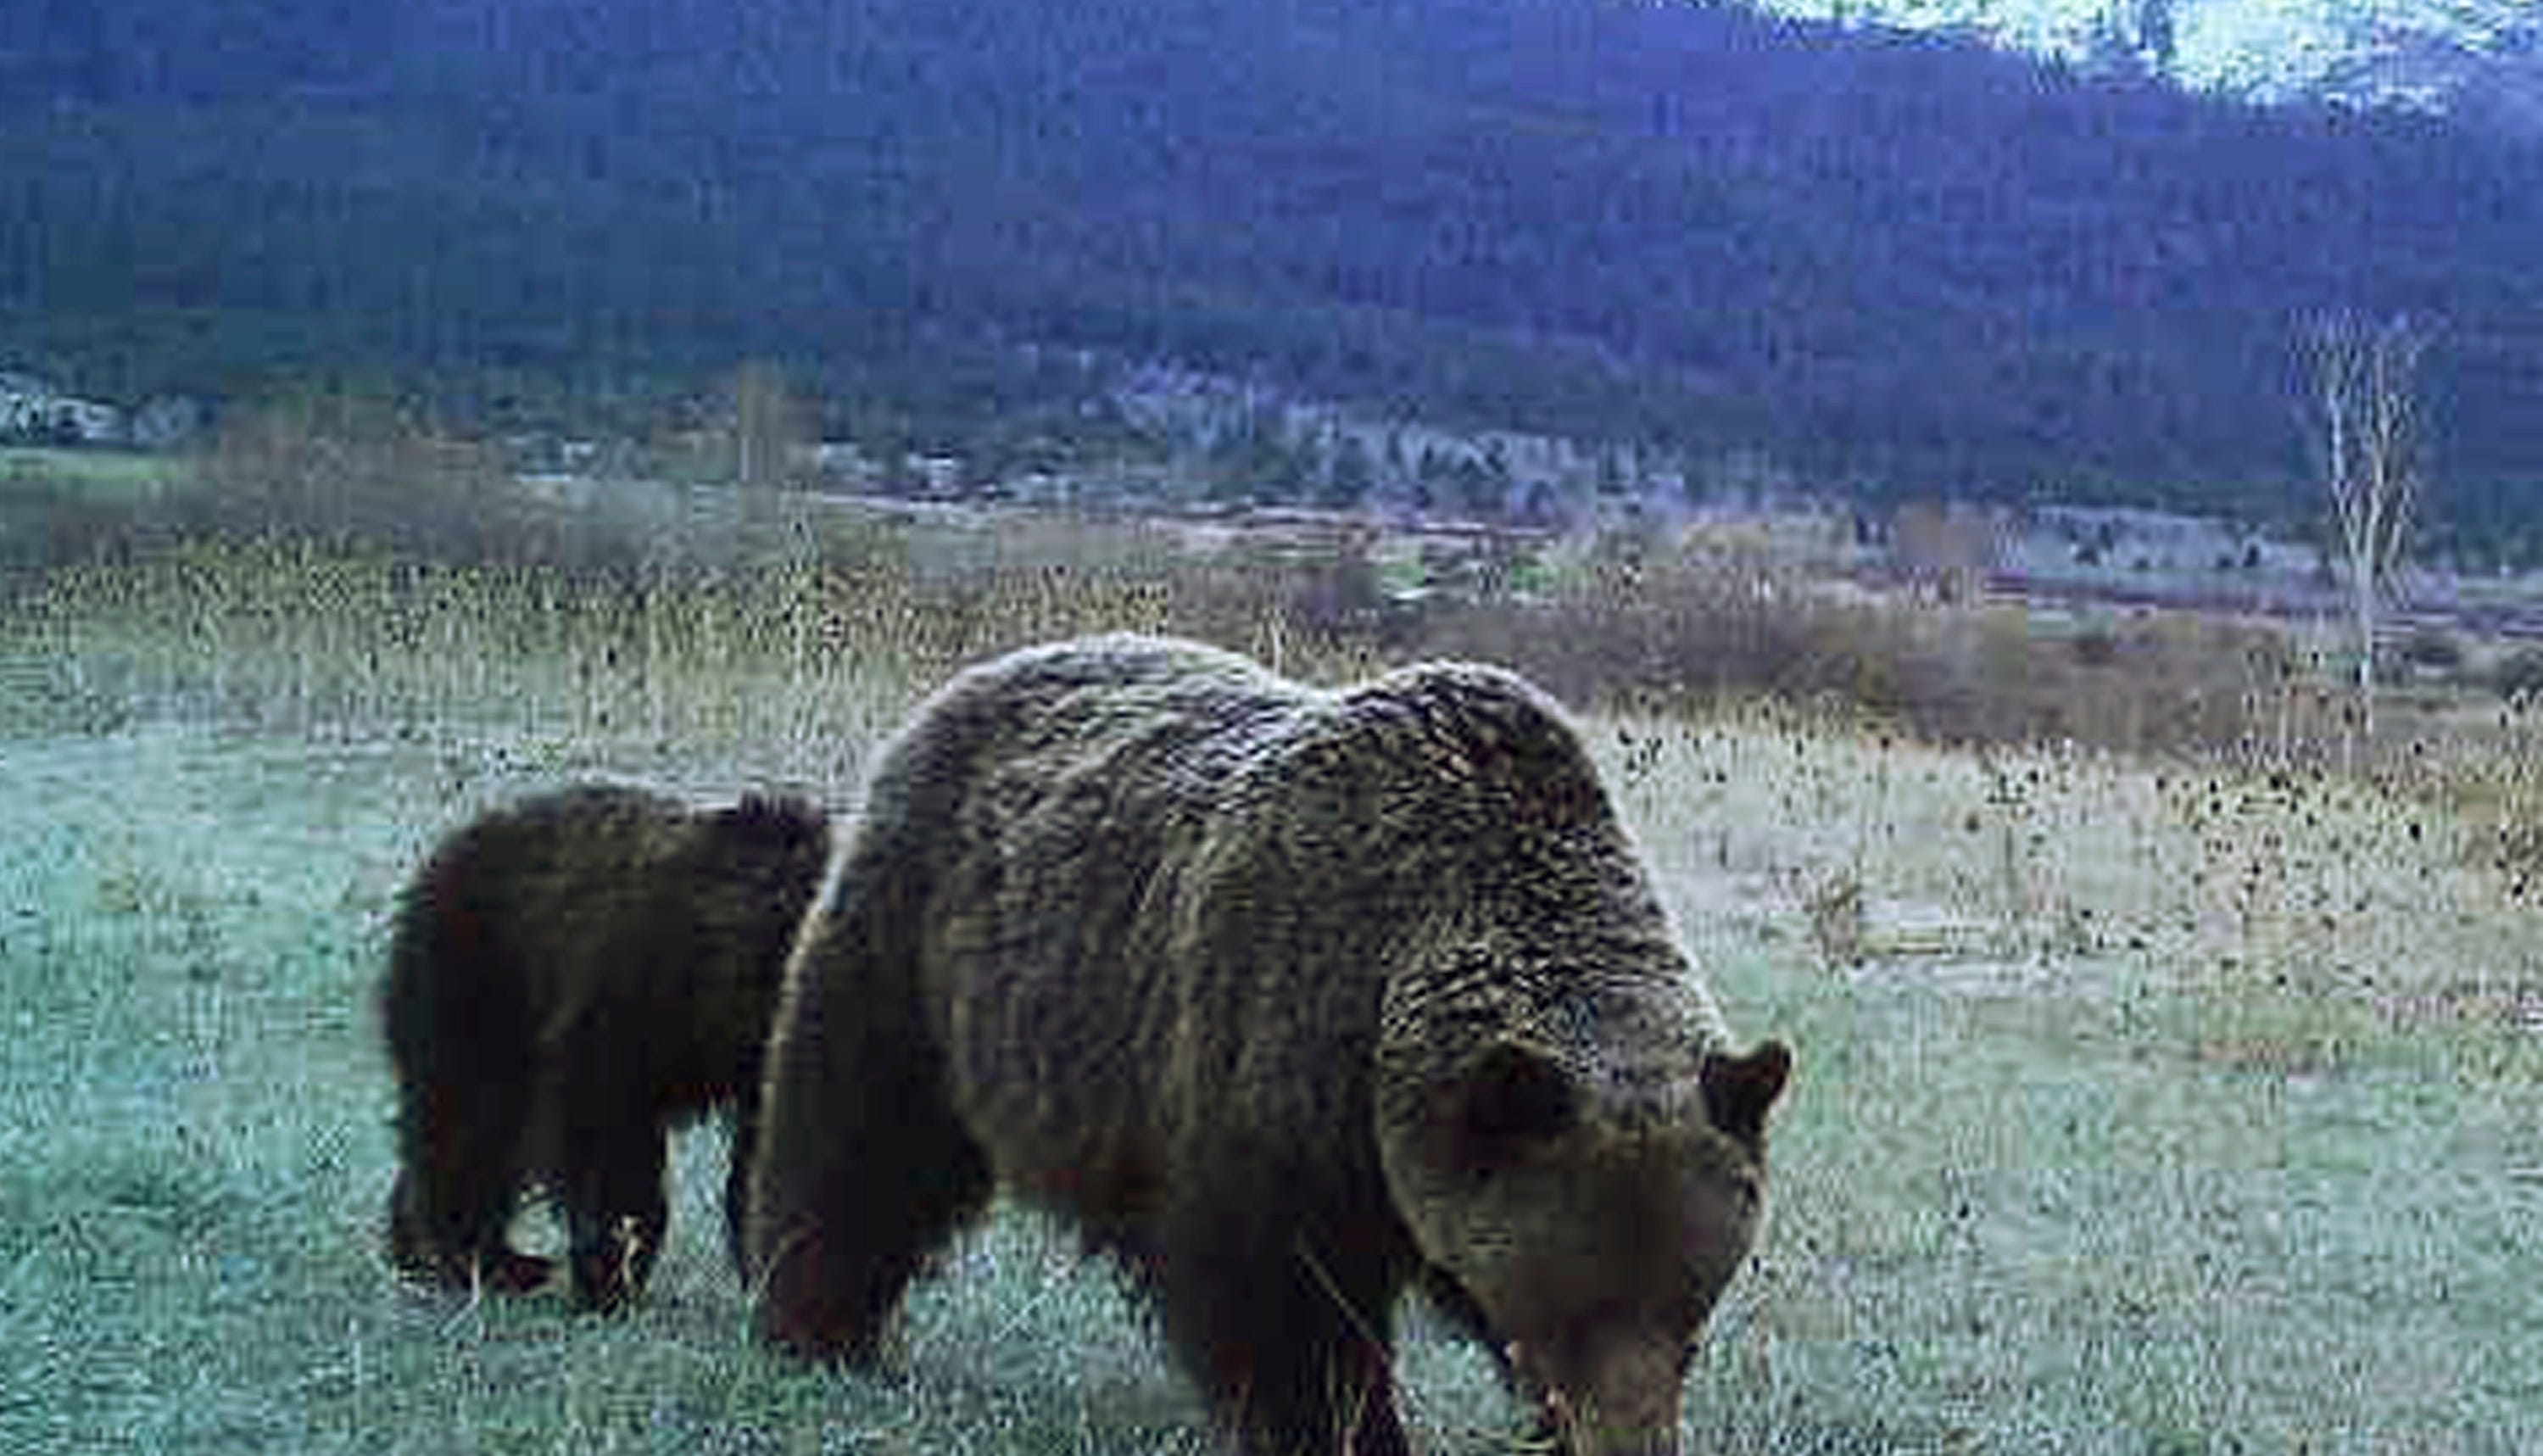 This spring, 2017 photo from a game camera provided by Stacey Thoft-Plimmer shows a grizzly bear and her cub on property near St. Ignatius, Mont. Thoft-Plimmer has now set up six cameras and shares her photos and videos on the Mission Valley Montana Grizz Cam Facebook page. (Stacey Thoft-Plimmer via AP)